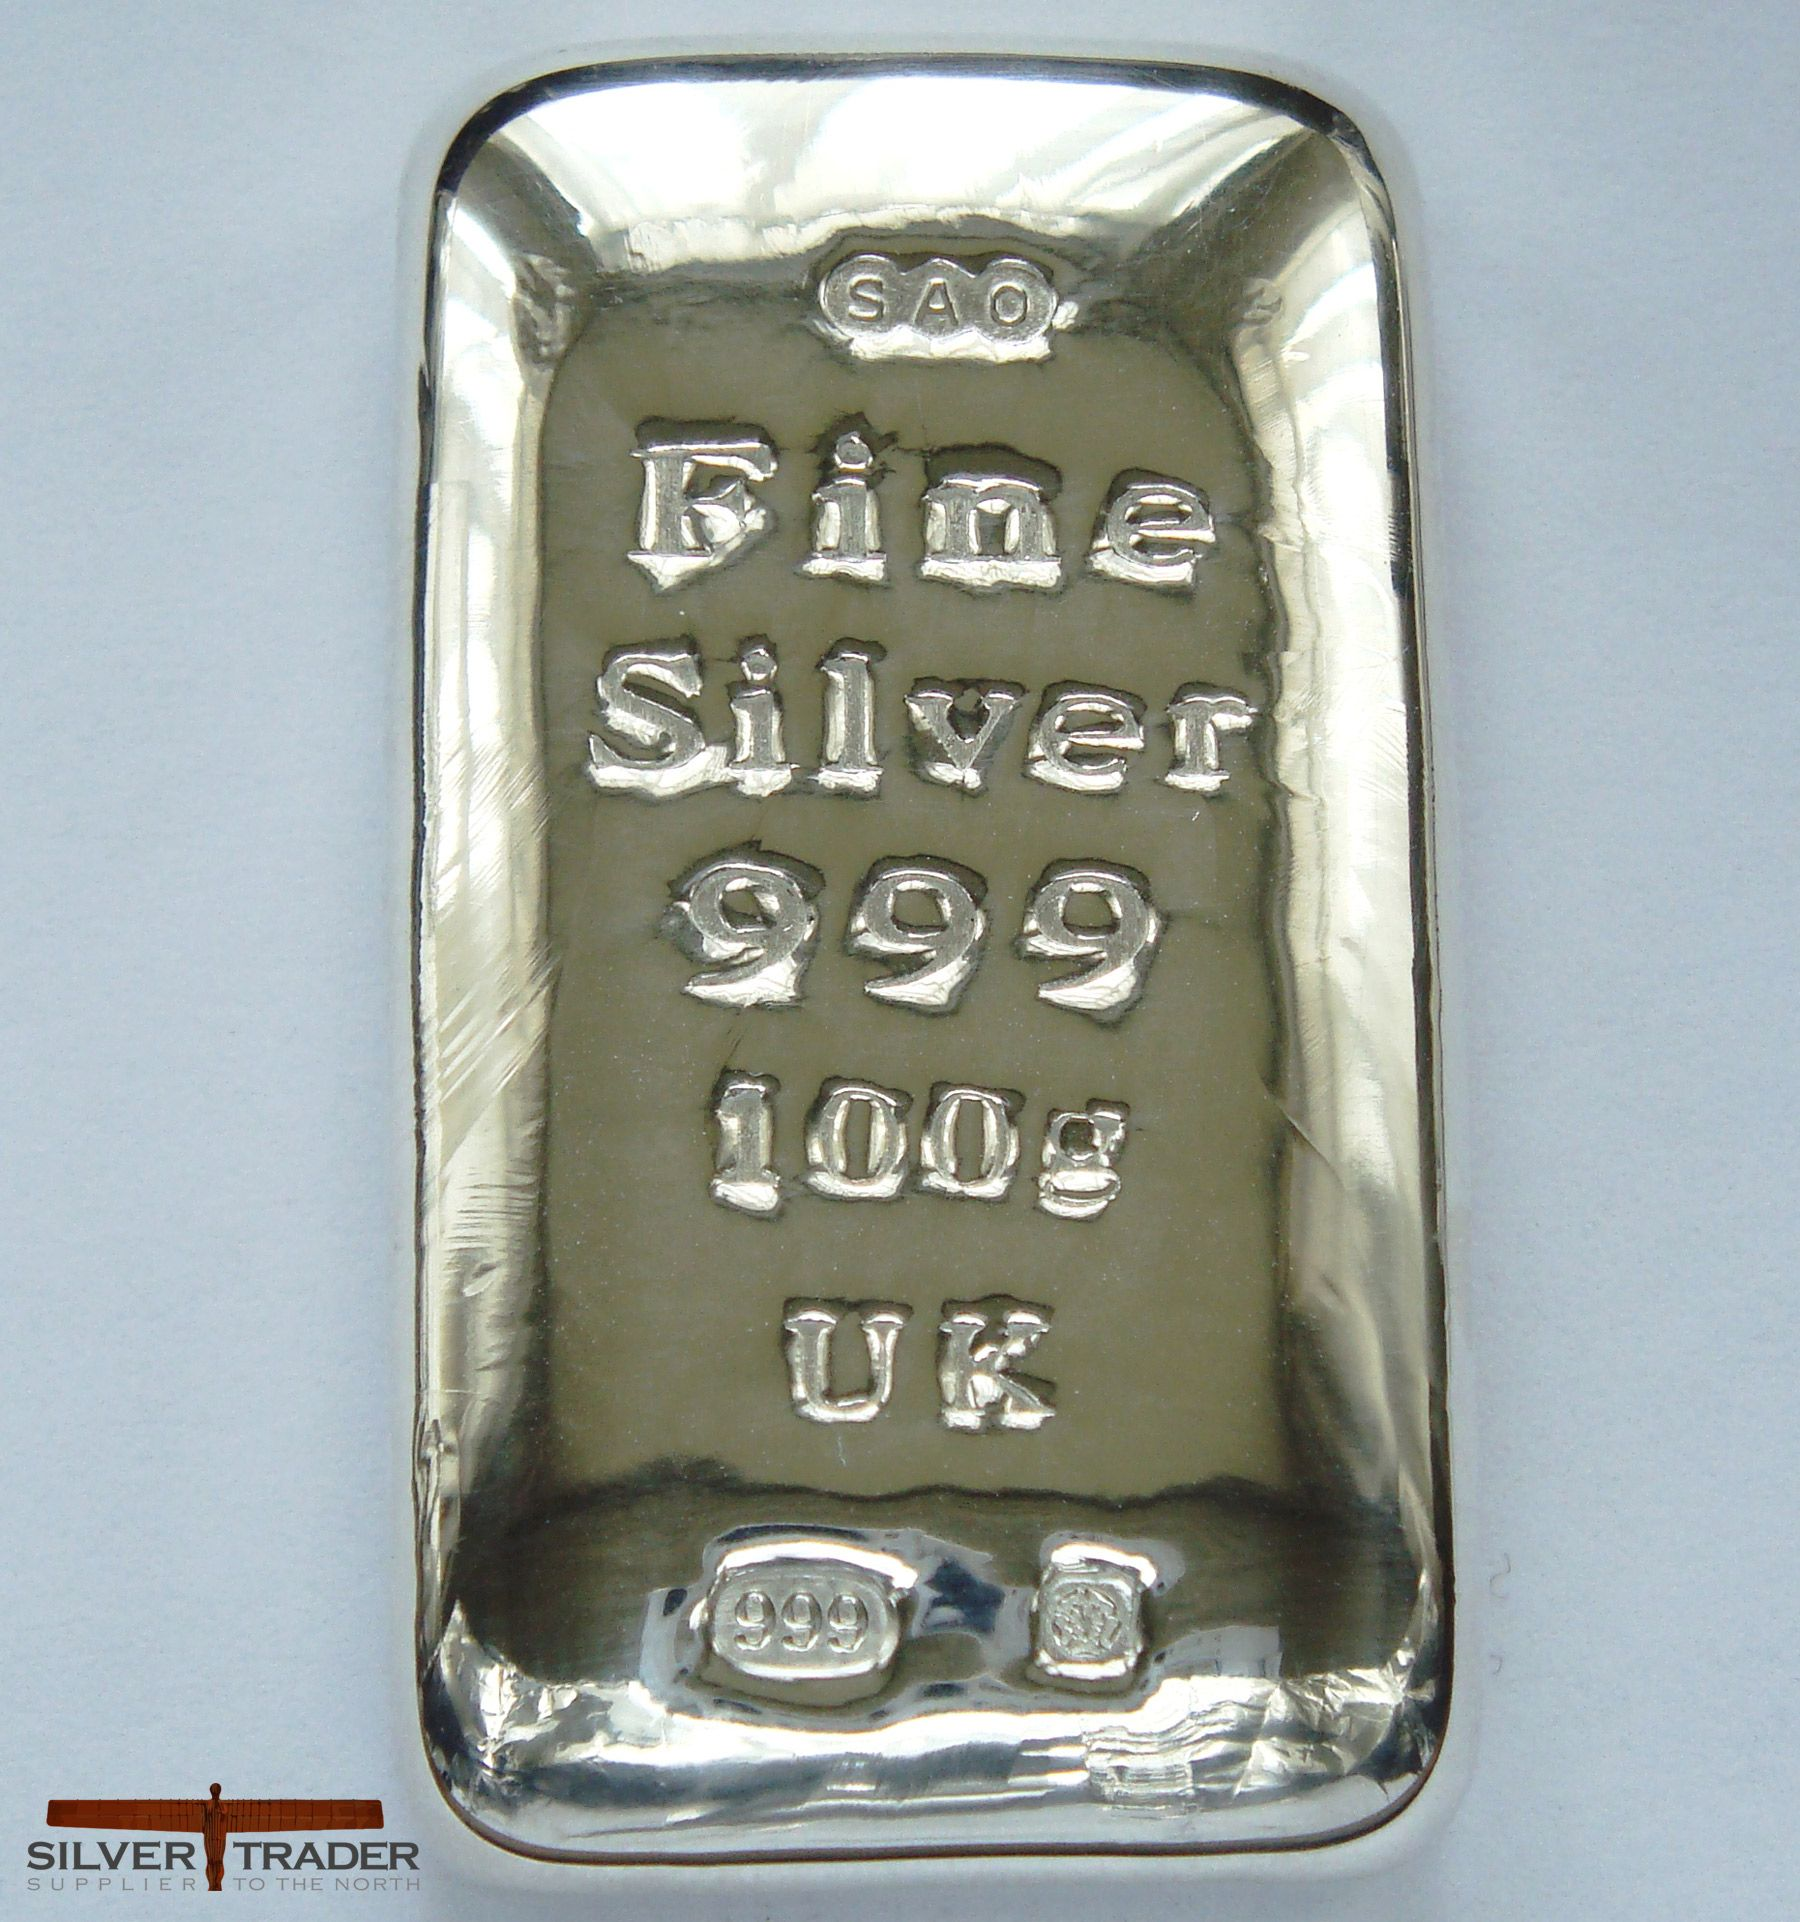 2020 Albion 100 Gram Trademarked 999 Silver Bullion Bar Silver Bullion Gold Bullion Bars Gold Bullion